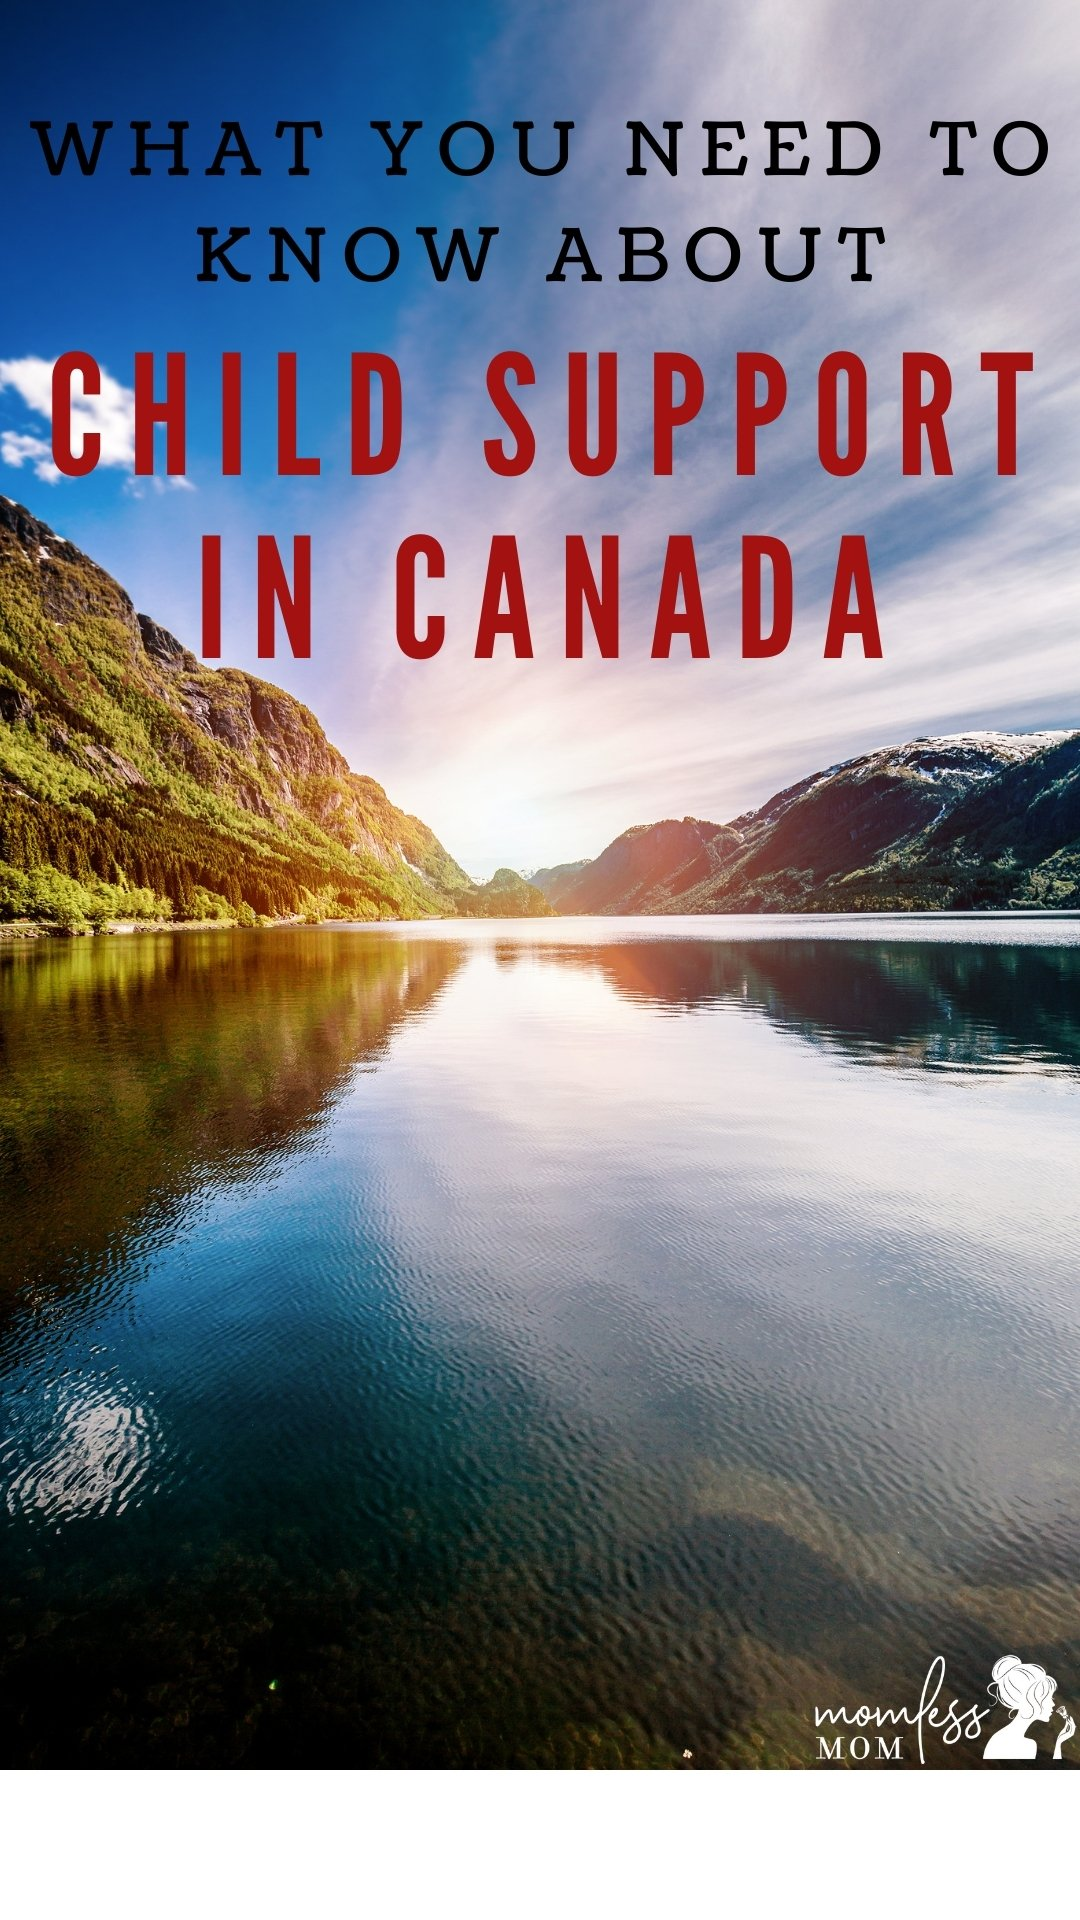 Child Support in Canada